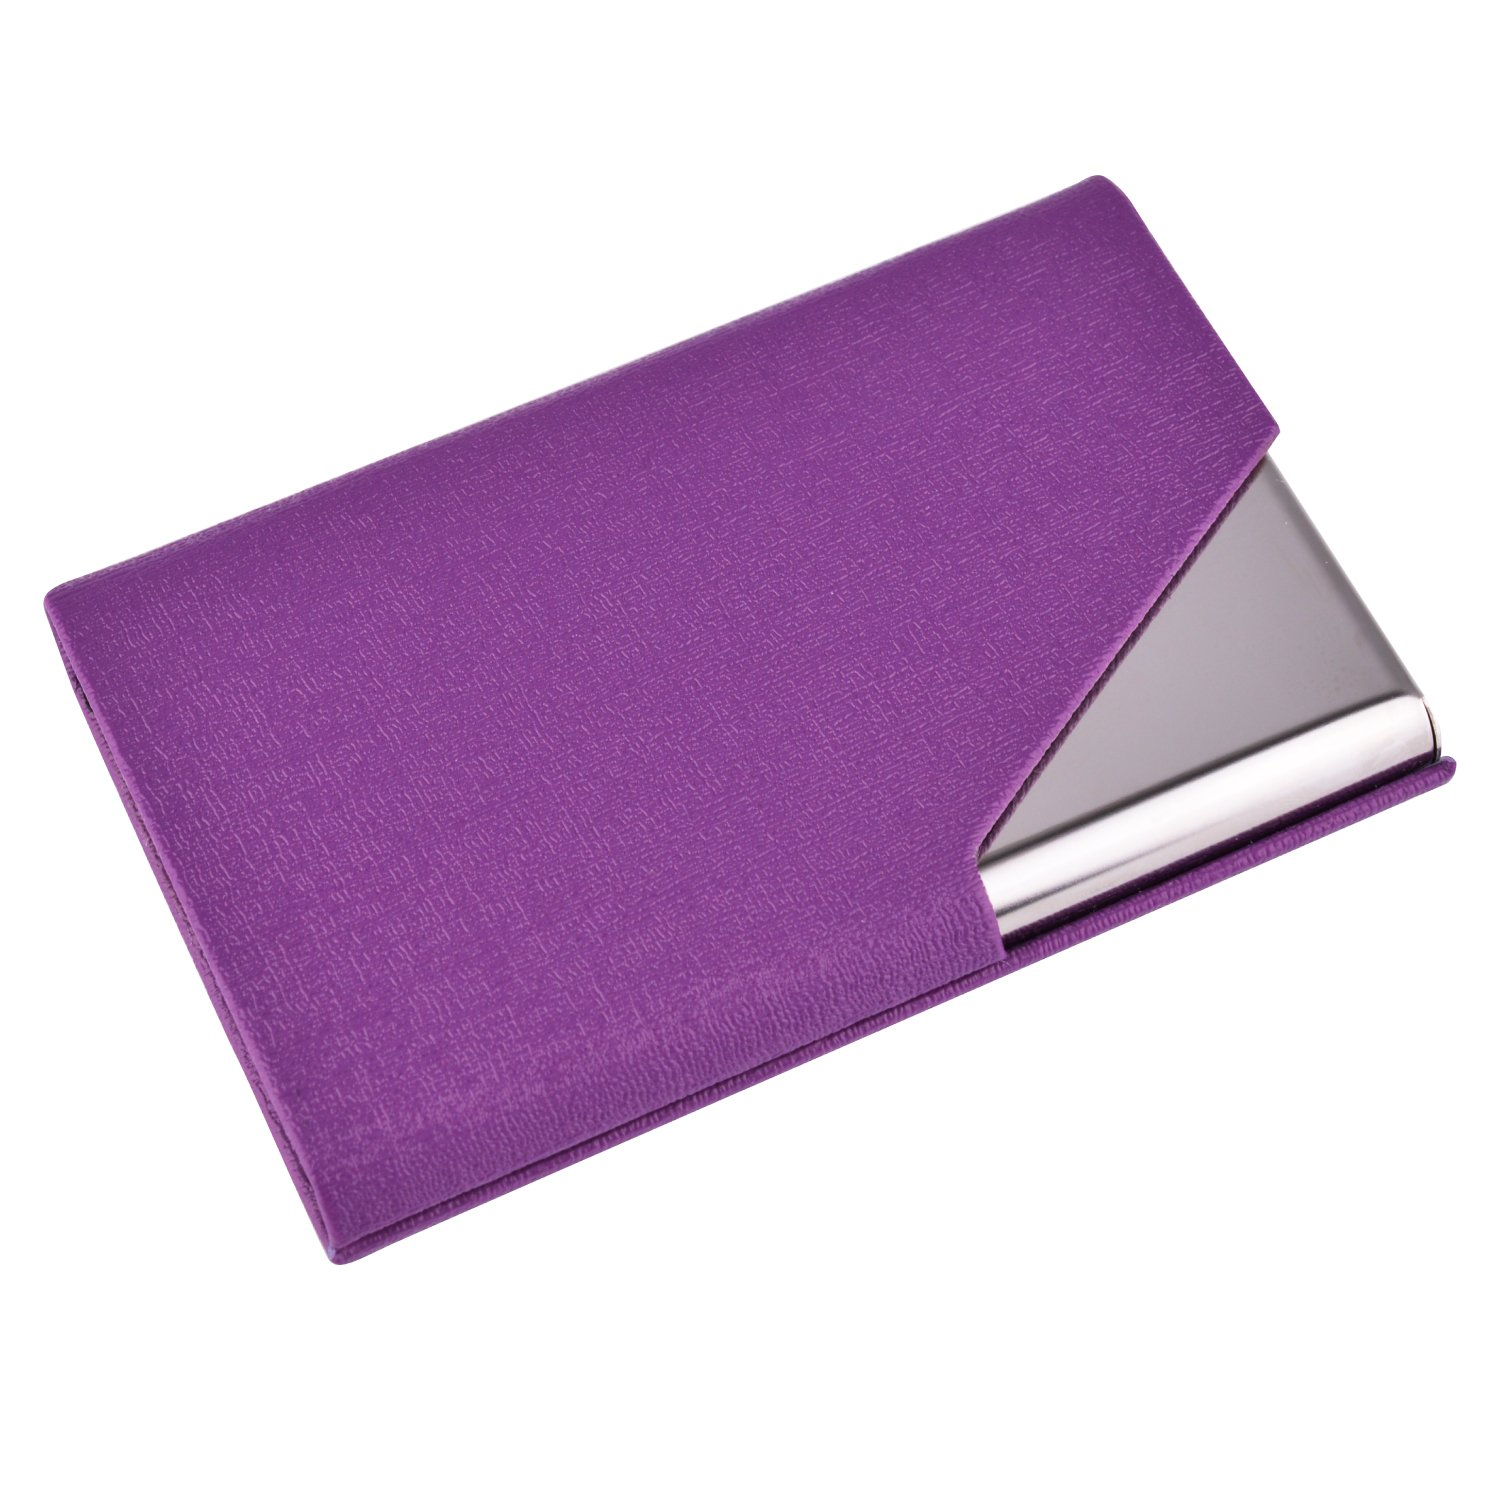 Maxgear Professional Business Card Holder PU Leather & Stainless Steel Business Card Case Metal Card Holders Women Name Card Holders with Magnetic Shut, Triangle Purple